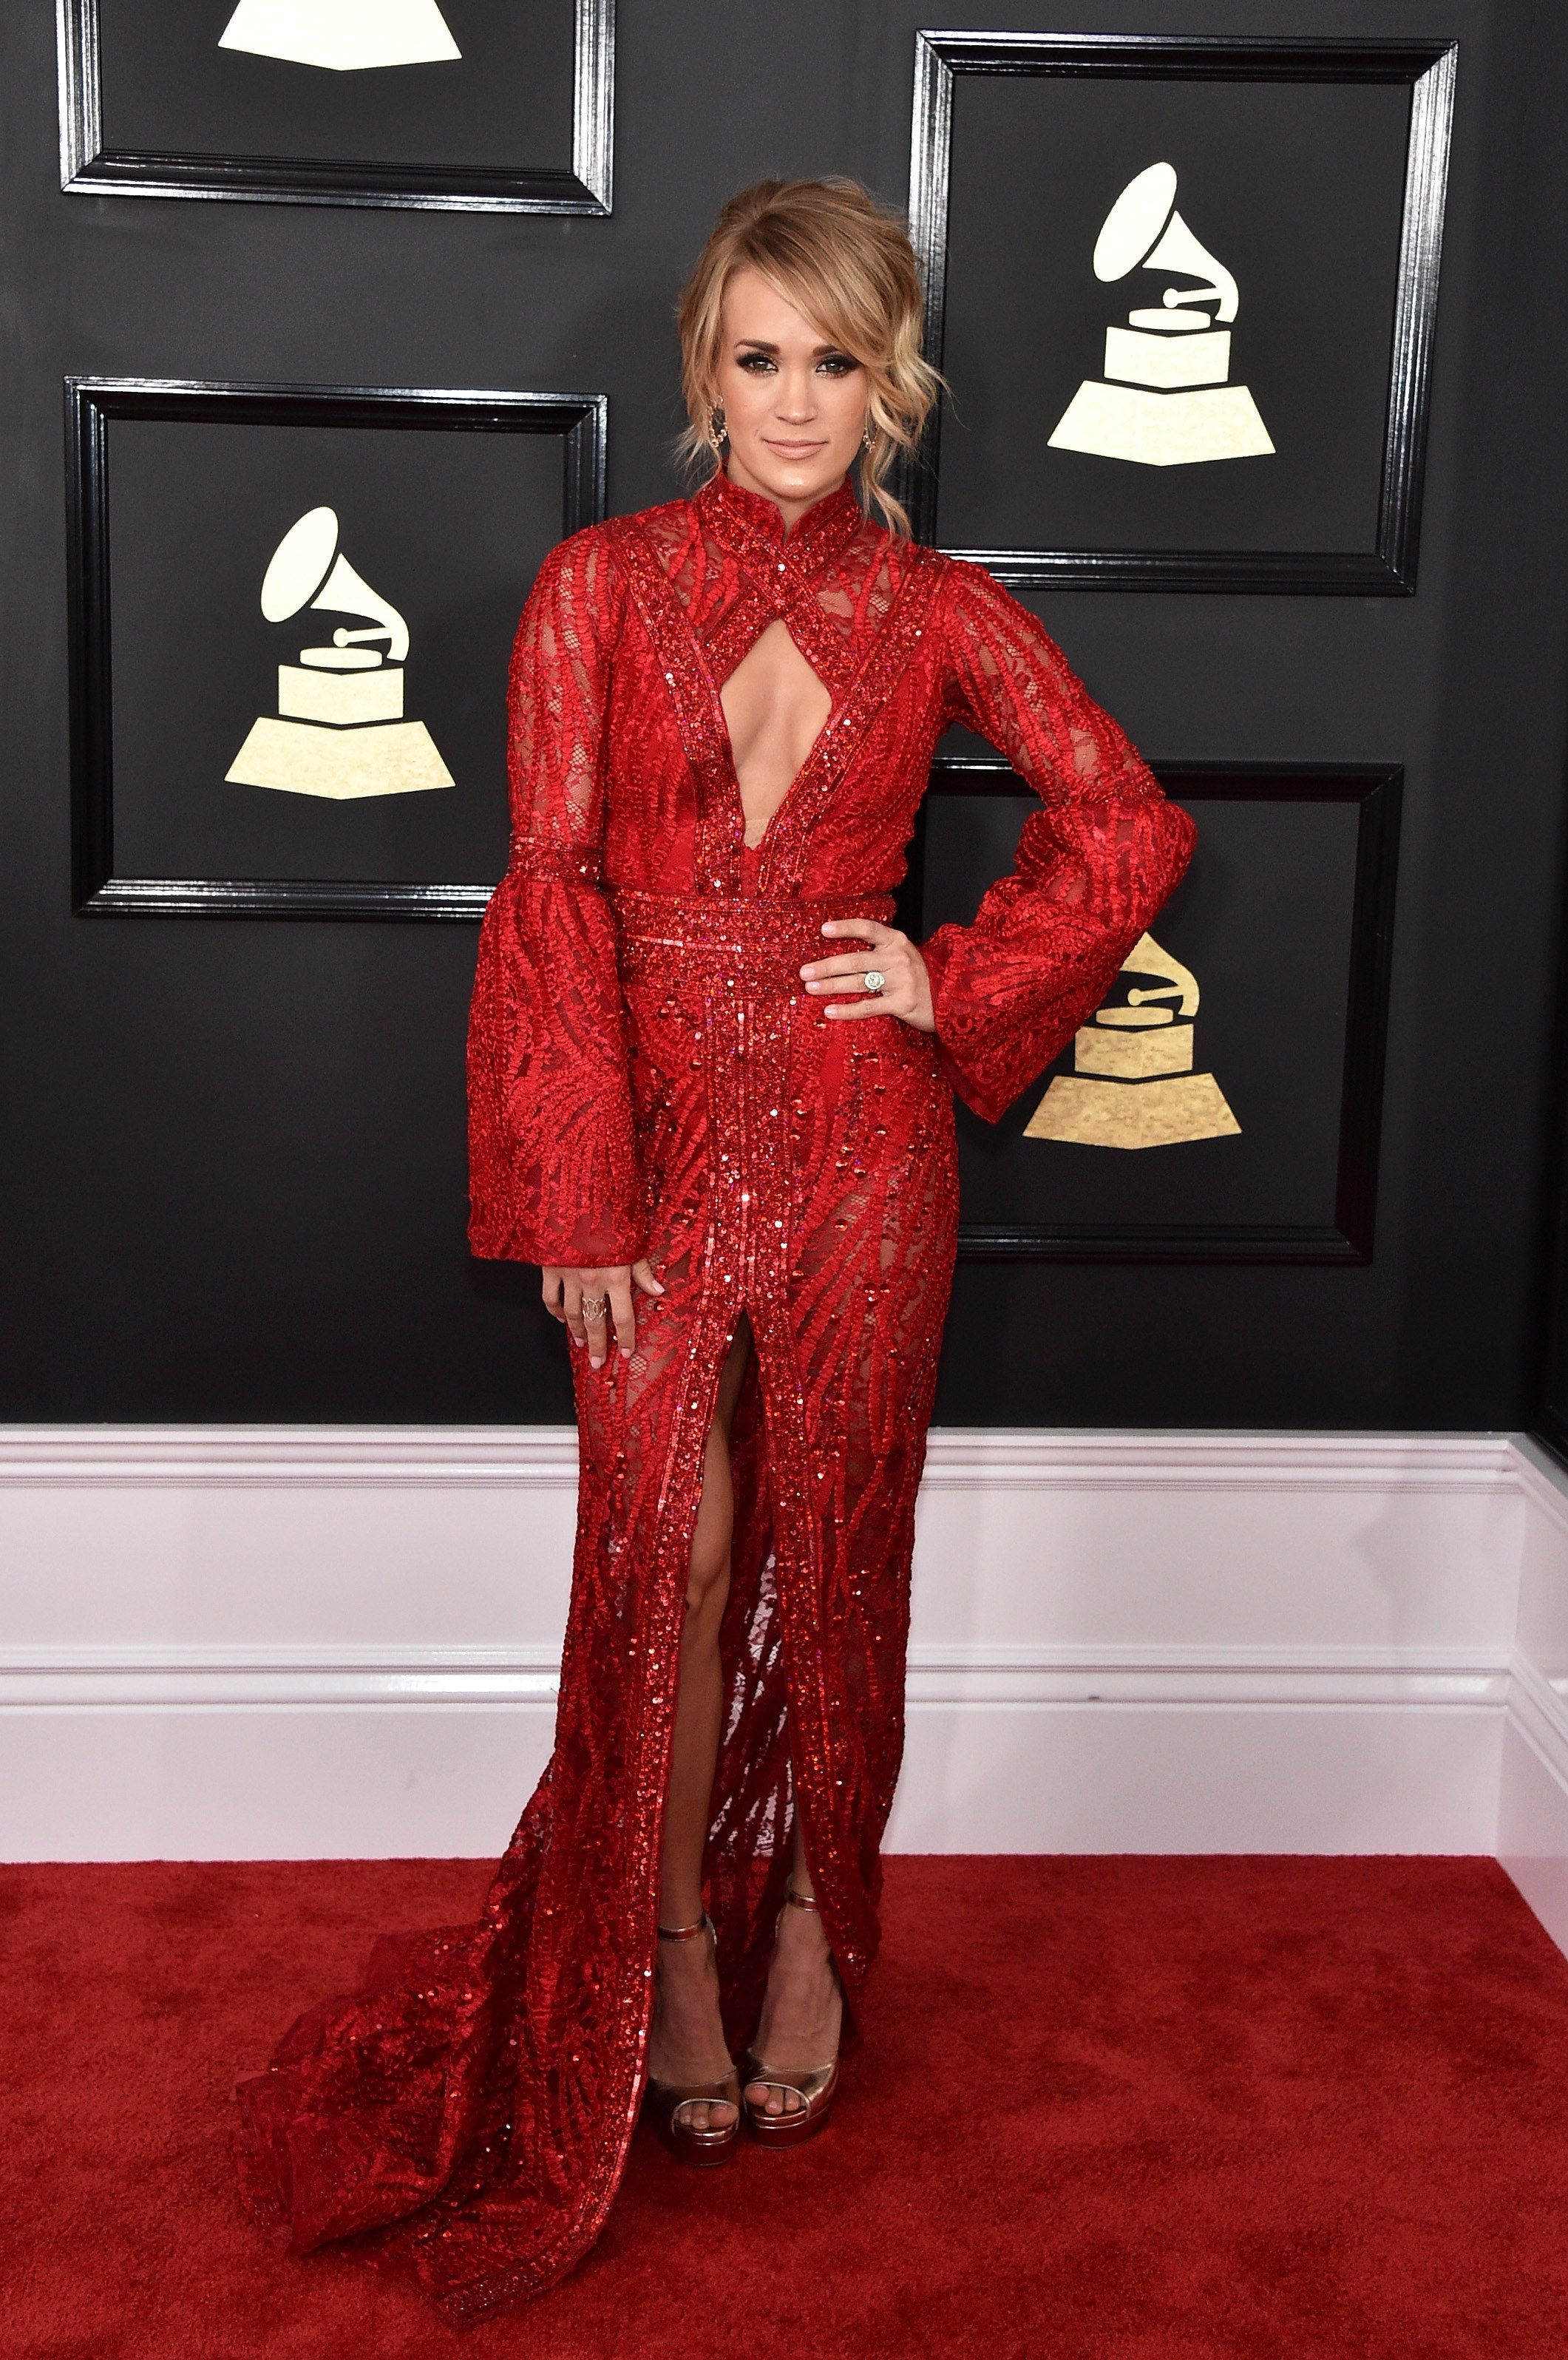 Grammys 2017 Fashion Live From The Red Carpet Red Carpet Dresses 2017 Red Carpet Fashion Grammy Awards Red Carpet